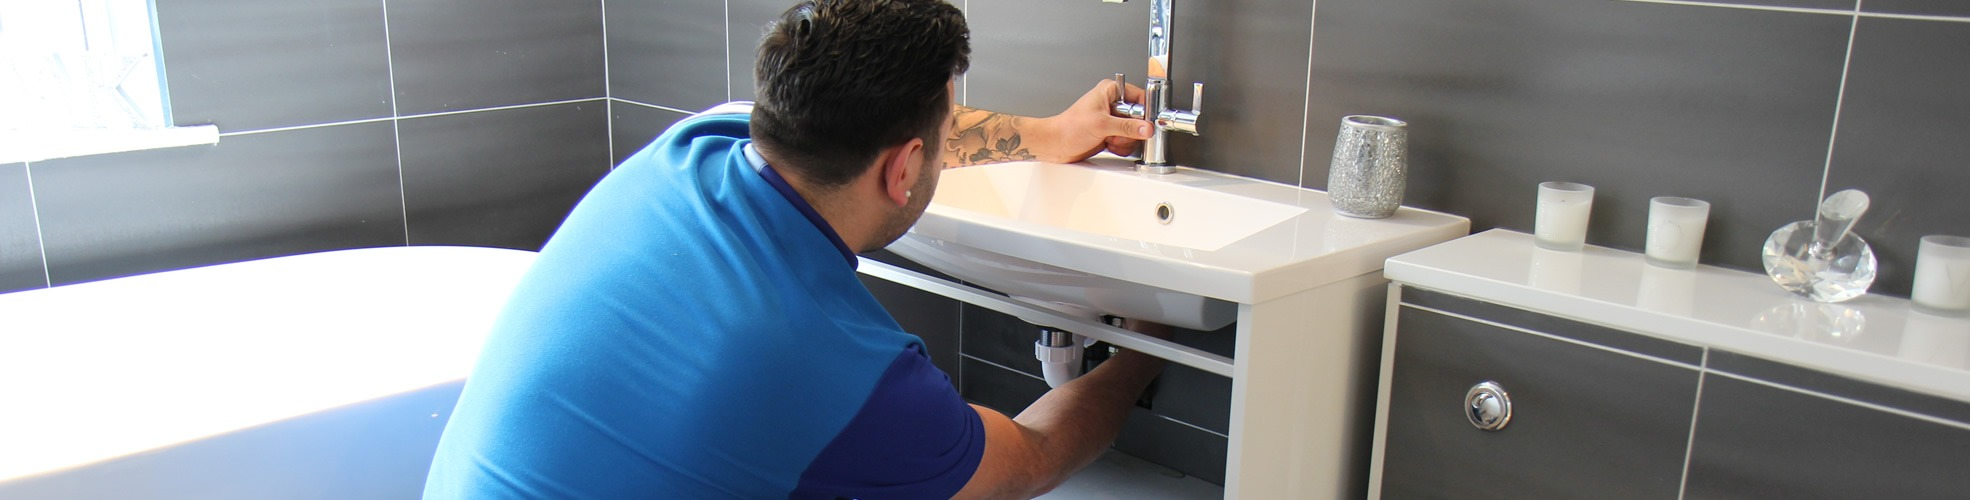 Plumbing Services by 3Flo - Local Plumber St Albans Hertfordshire